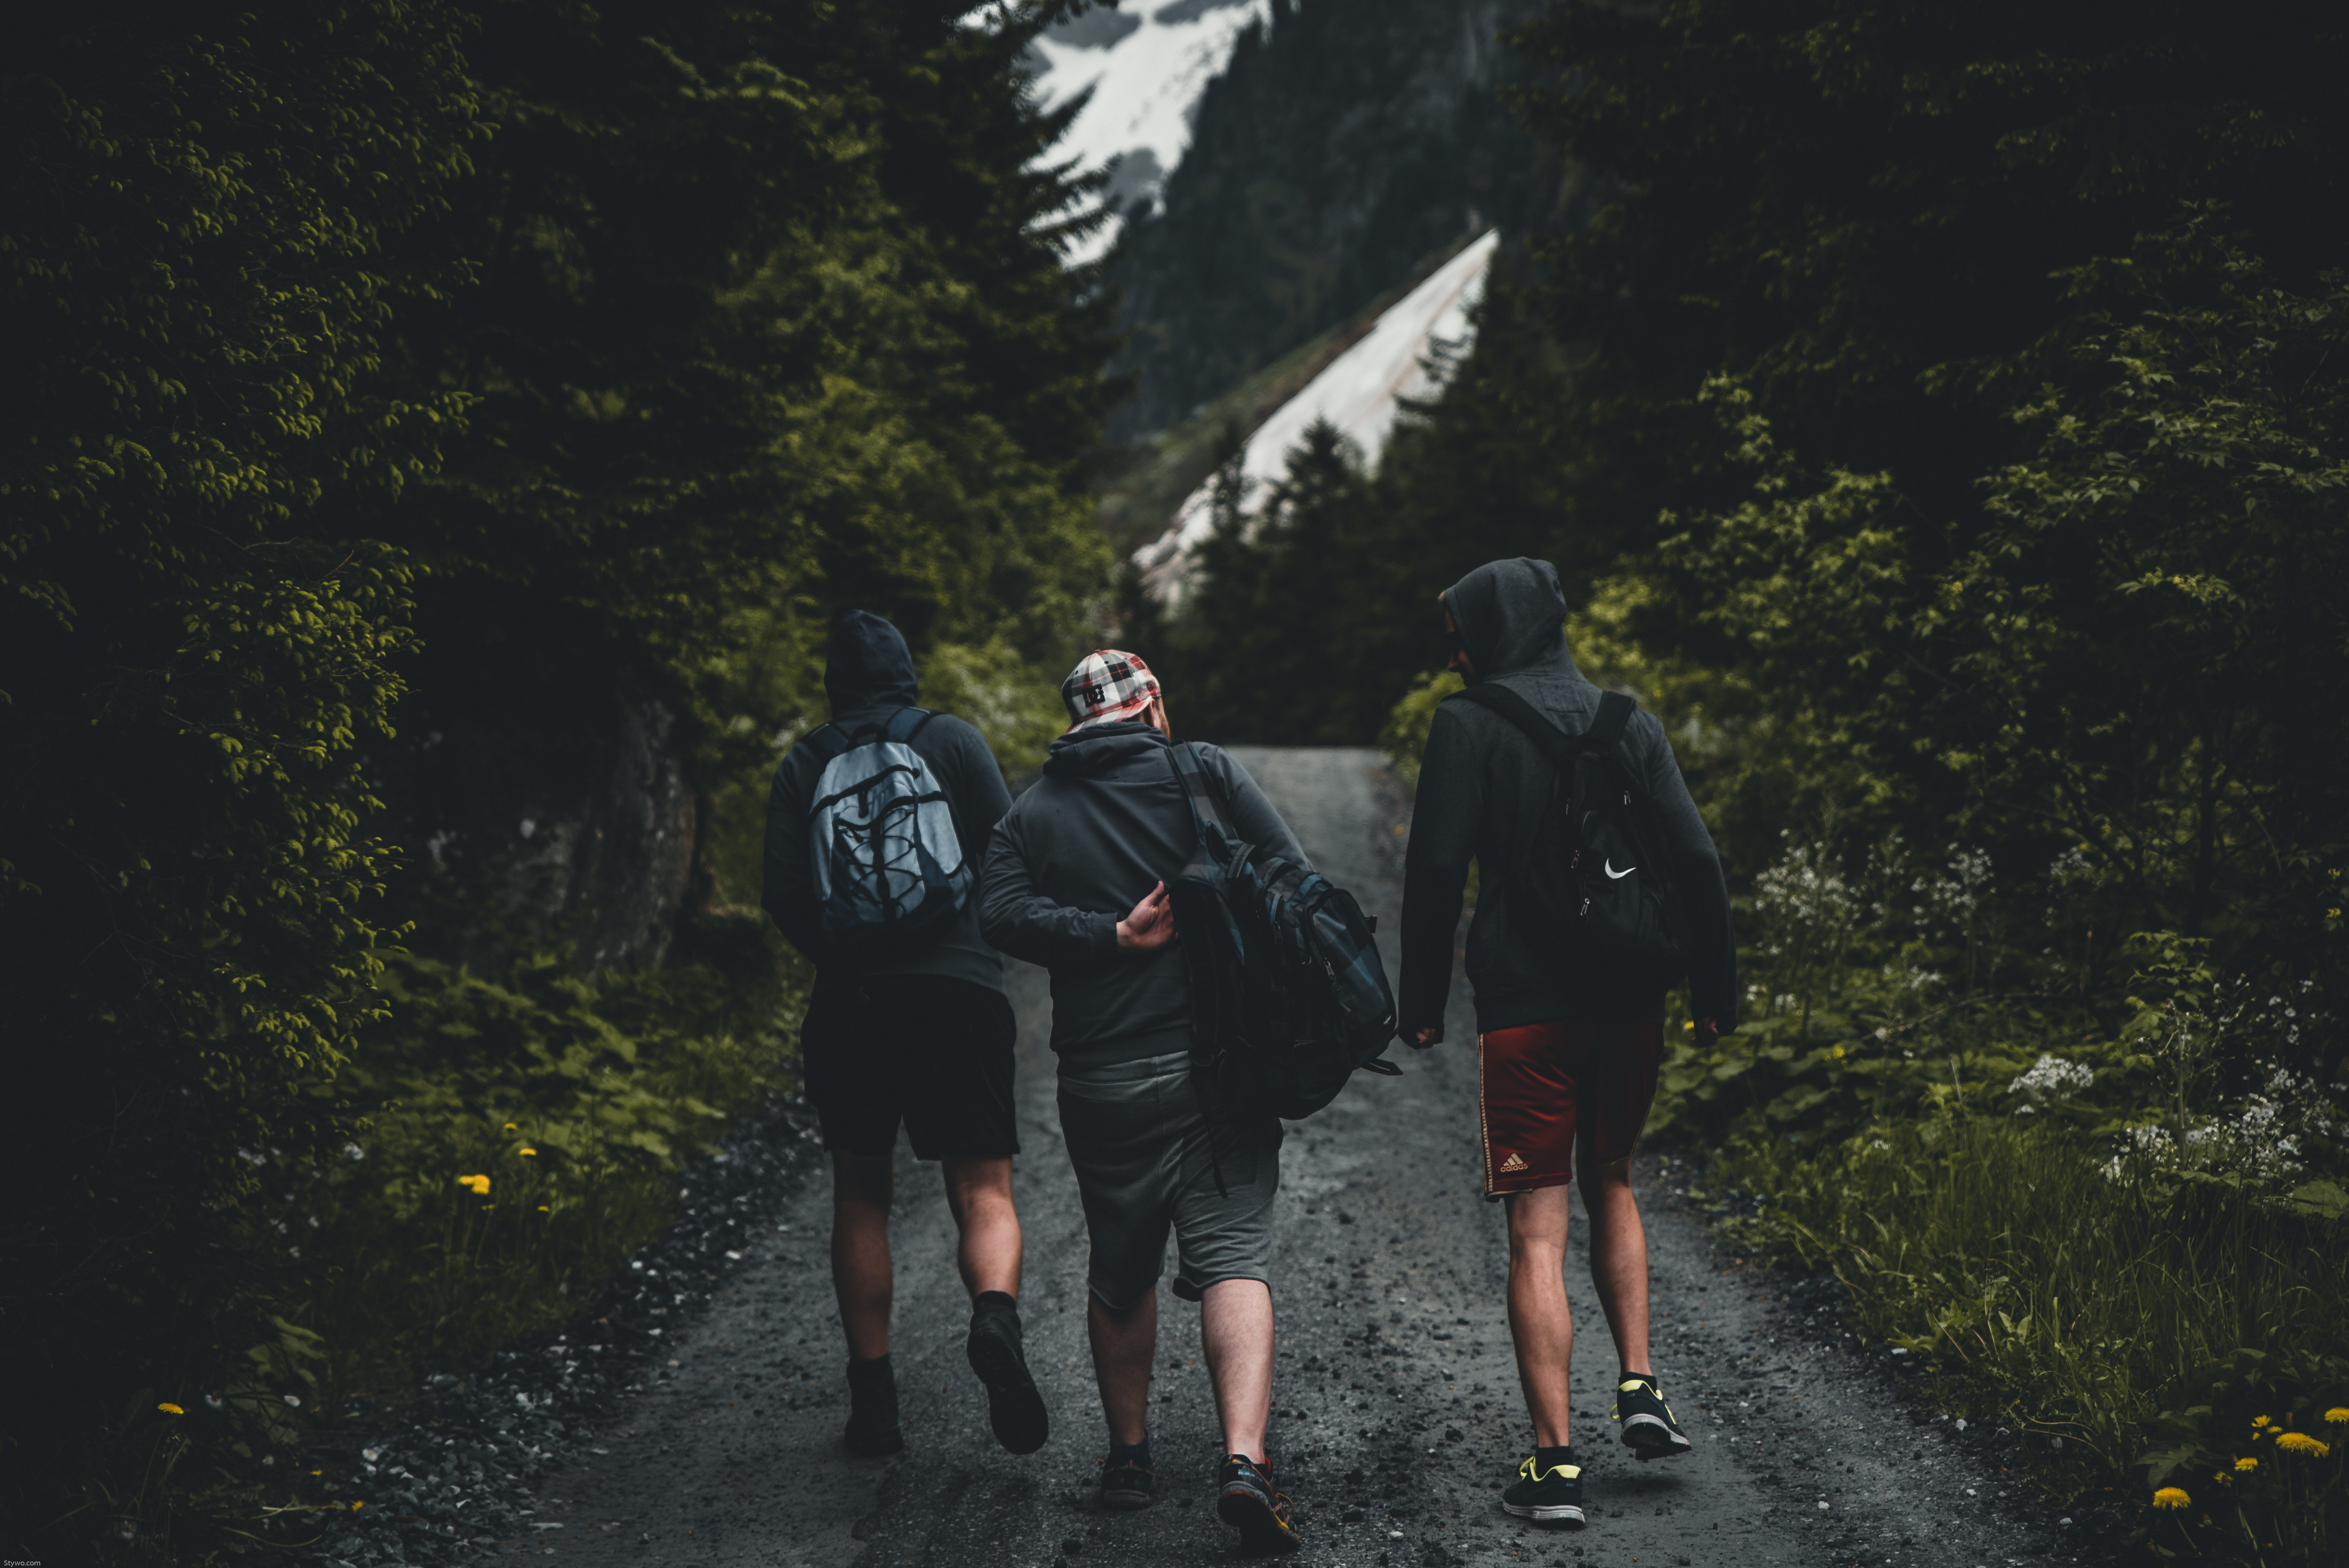 The backs of a group of three guys walking down a road.